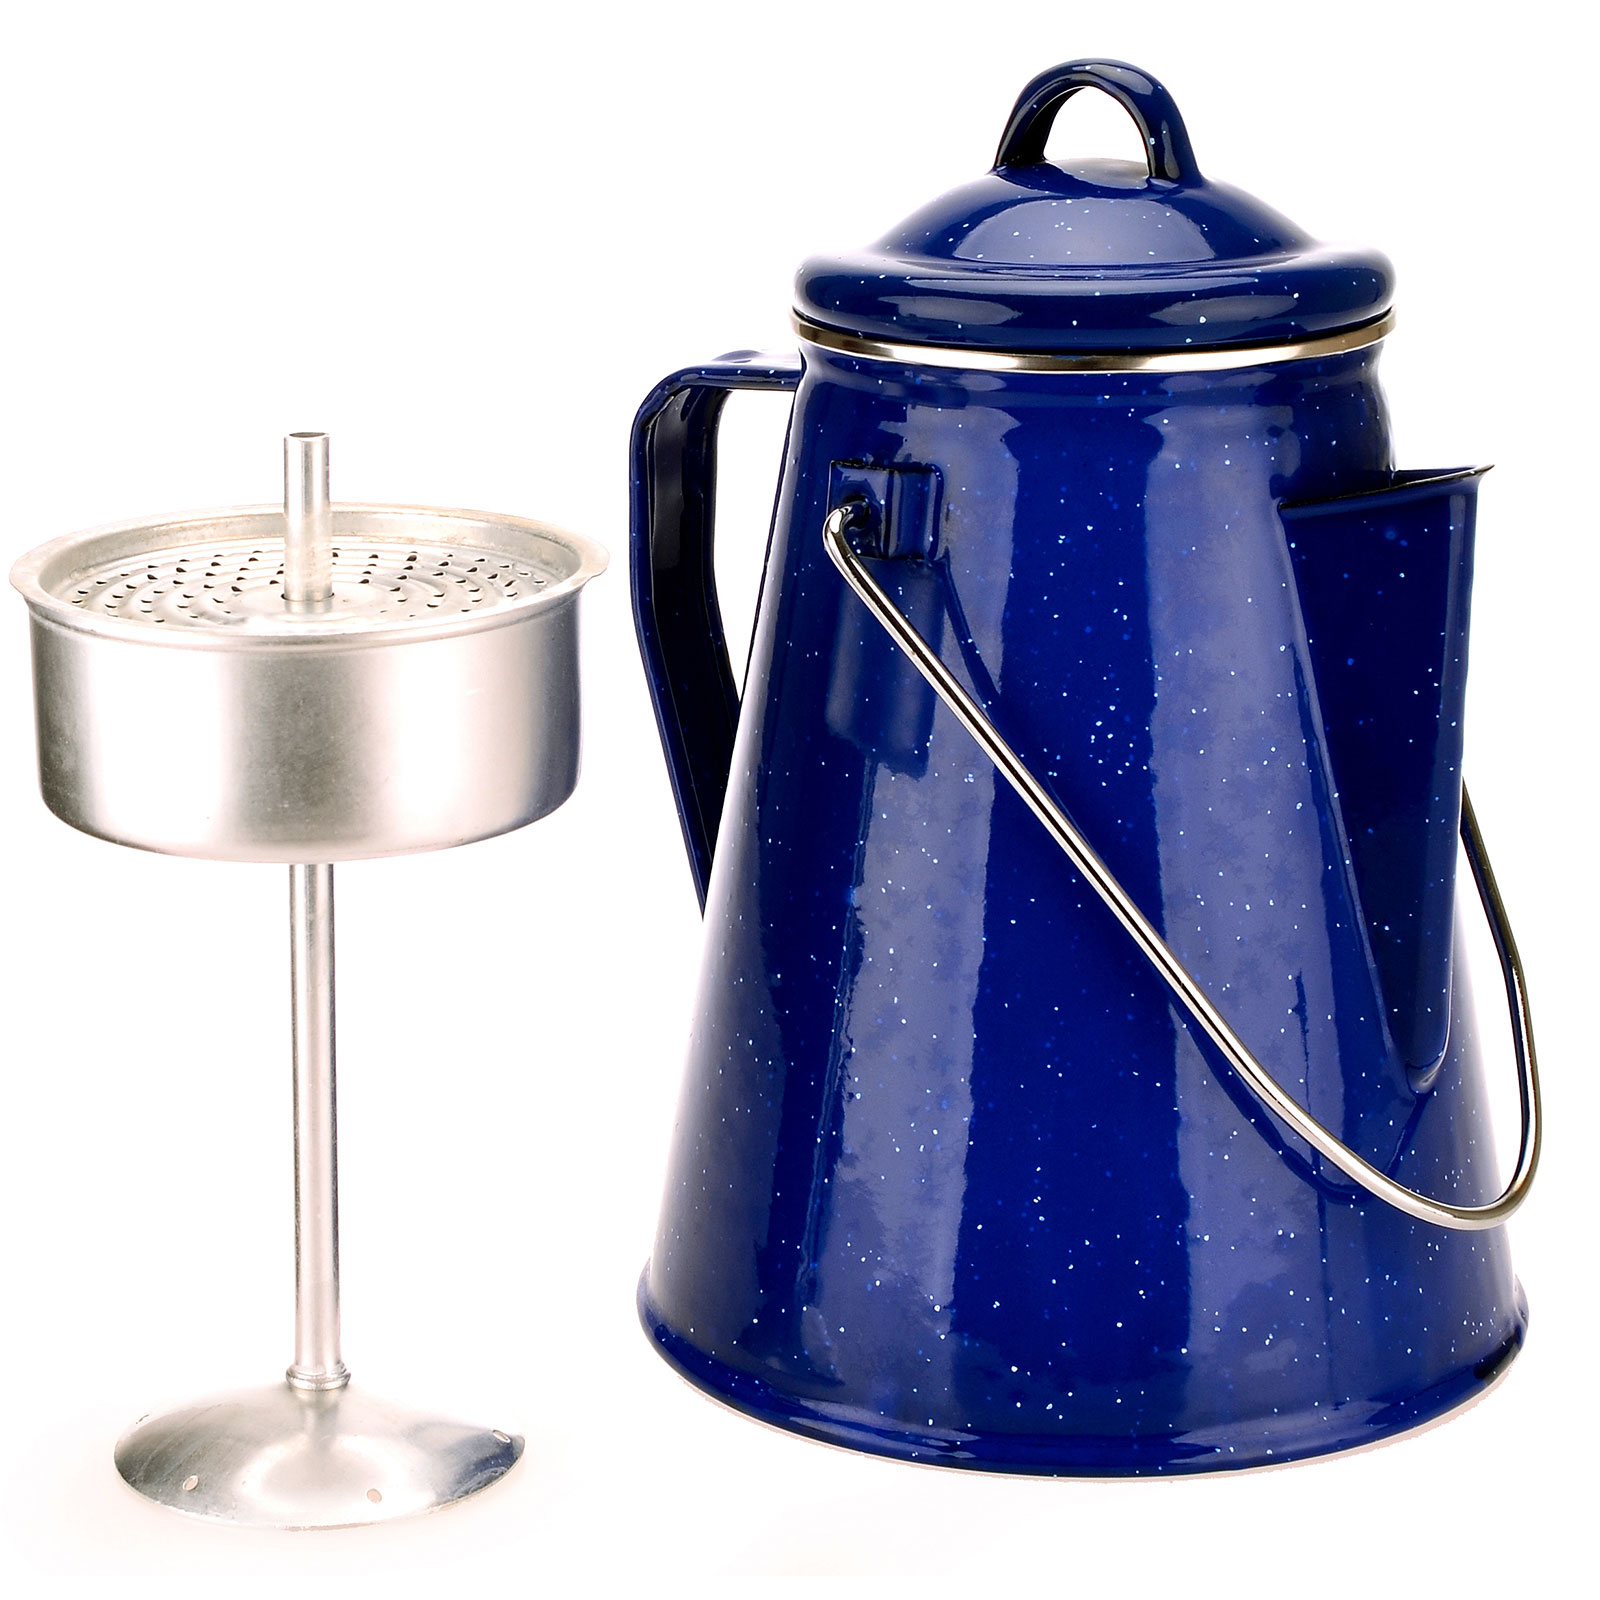 Enamel Coffee Pot Camping Kitchen To Cook In Mitchells Adventure